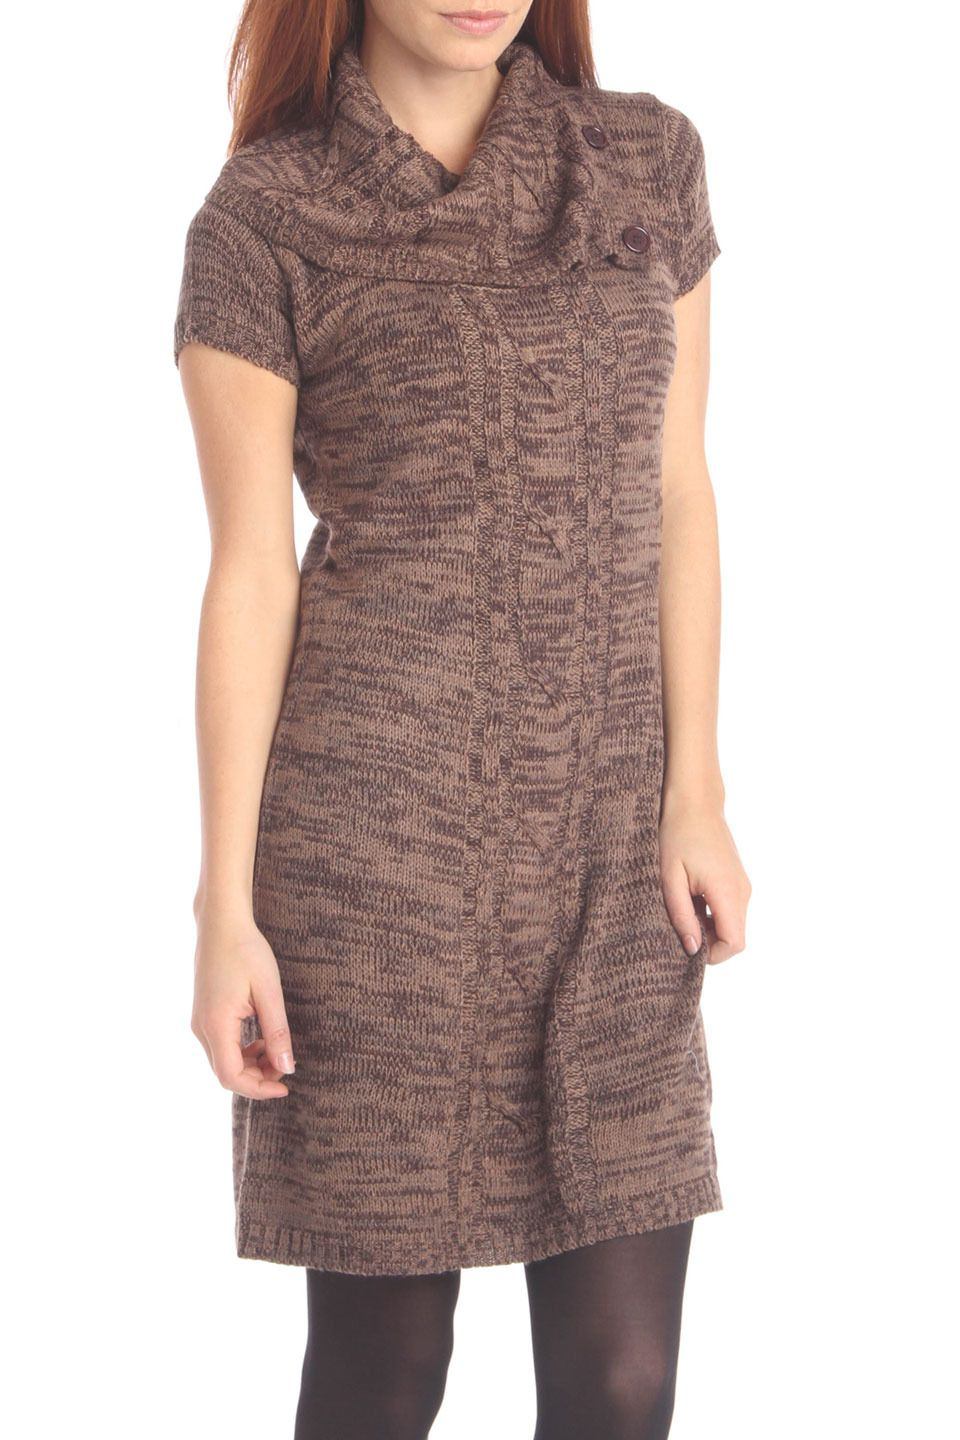 Cabled Sweater Dress In Brown.